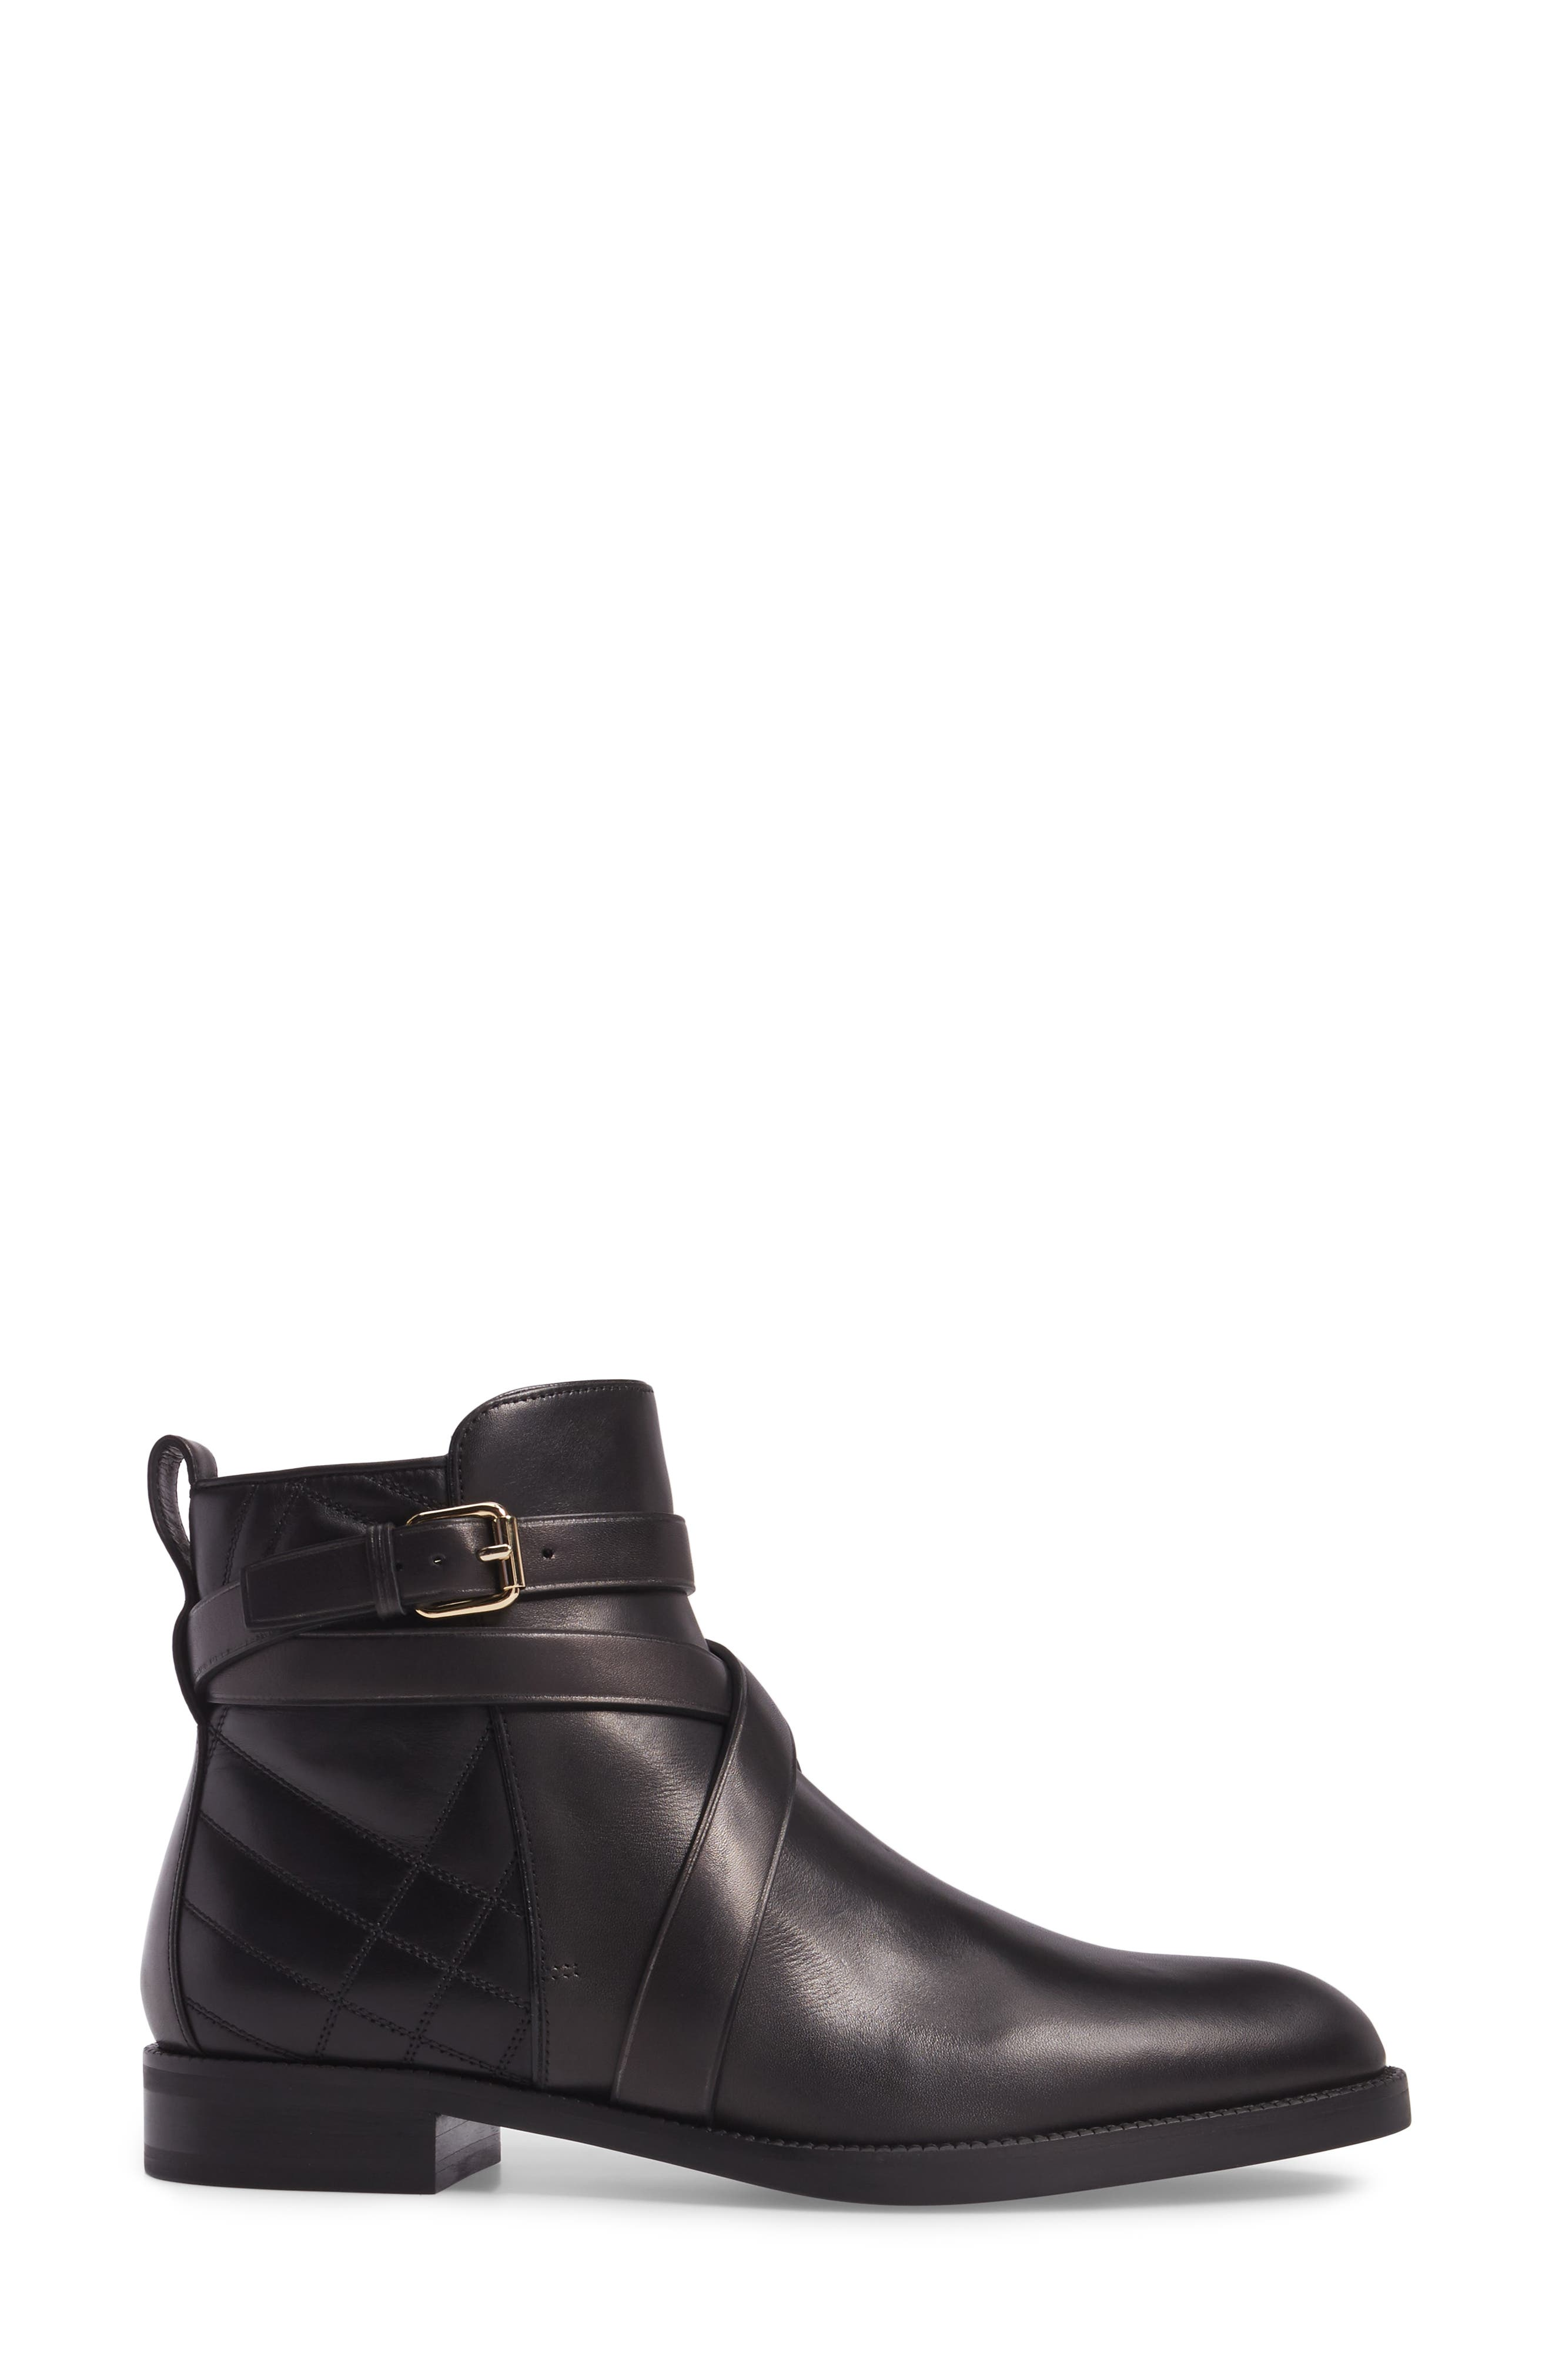 Ankle Boot,                             Alternate thumbnail 3, color,                             Black